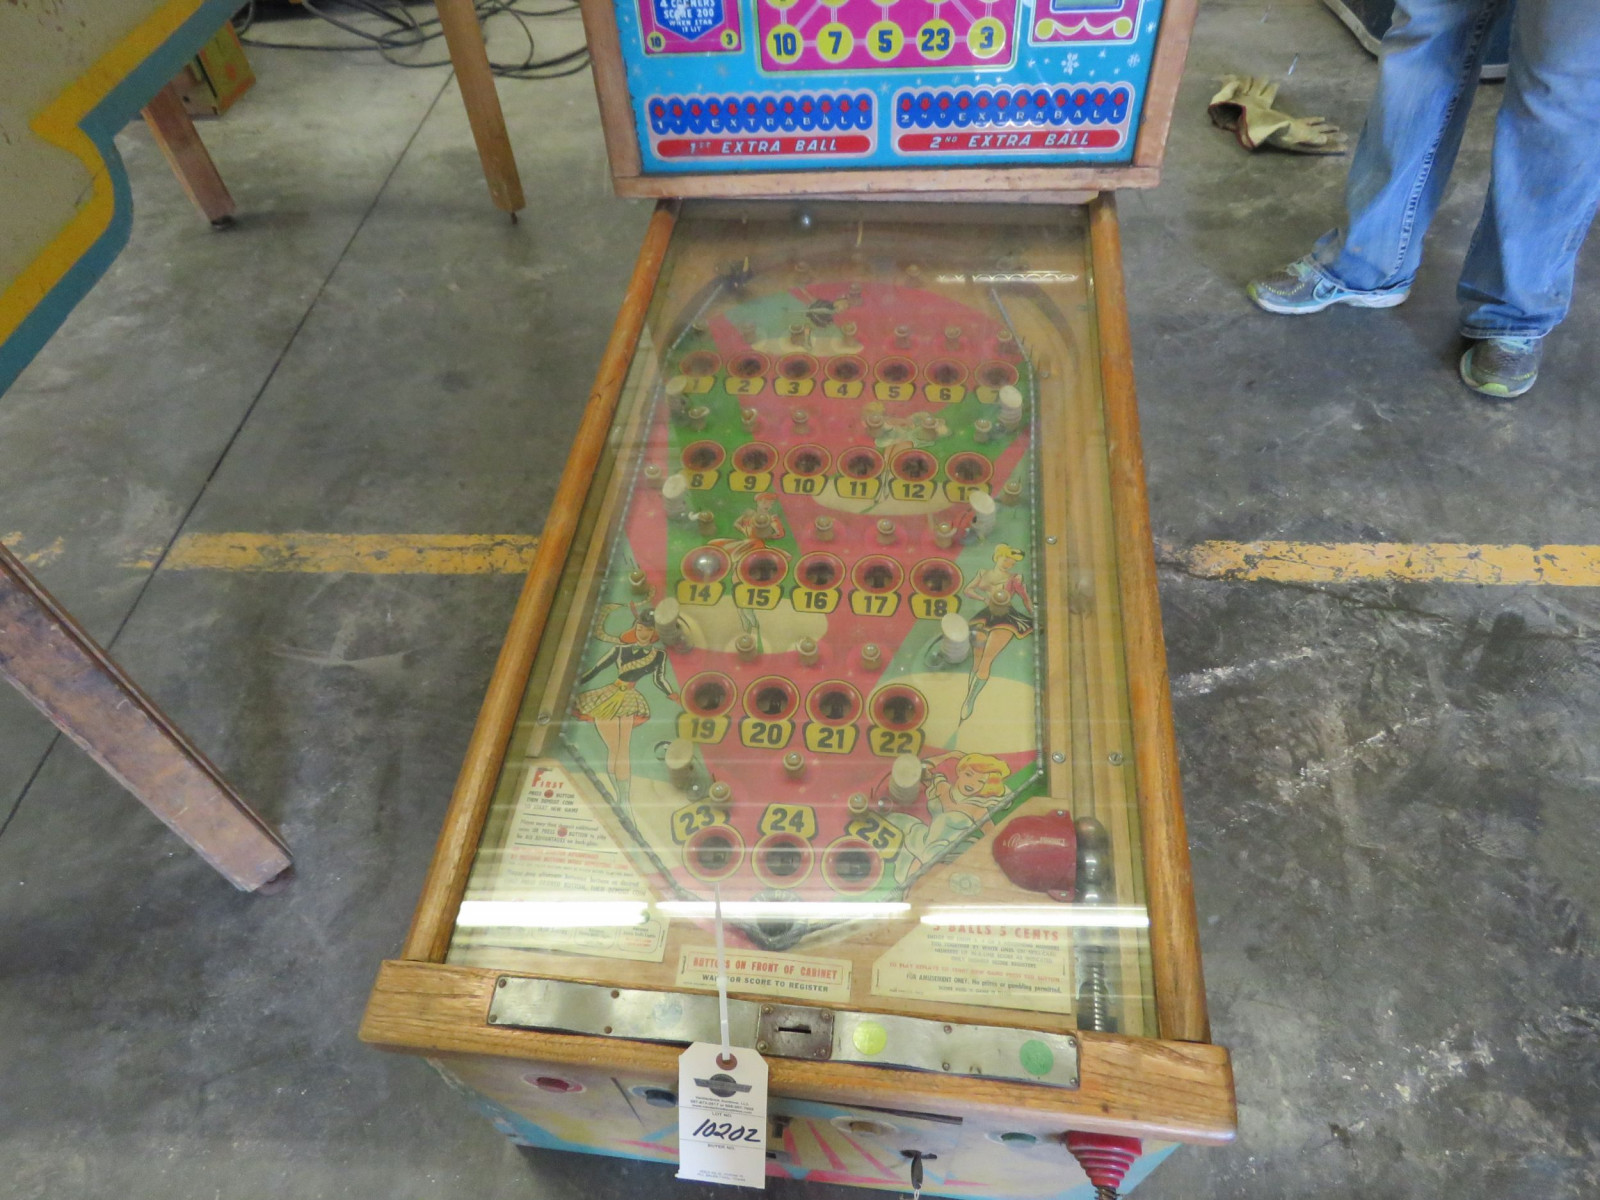 Spot-Lite Vintage Arcade-Pinball Machine by Bally - Image 3